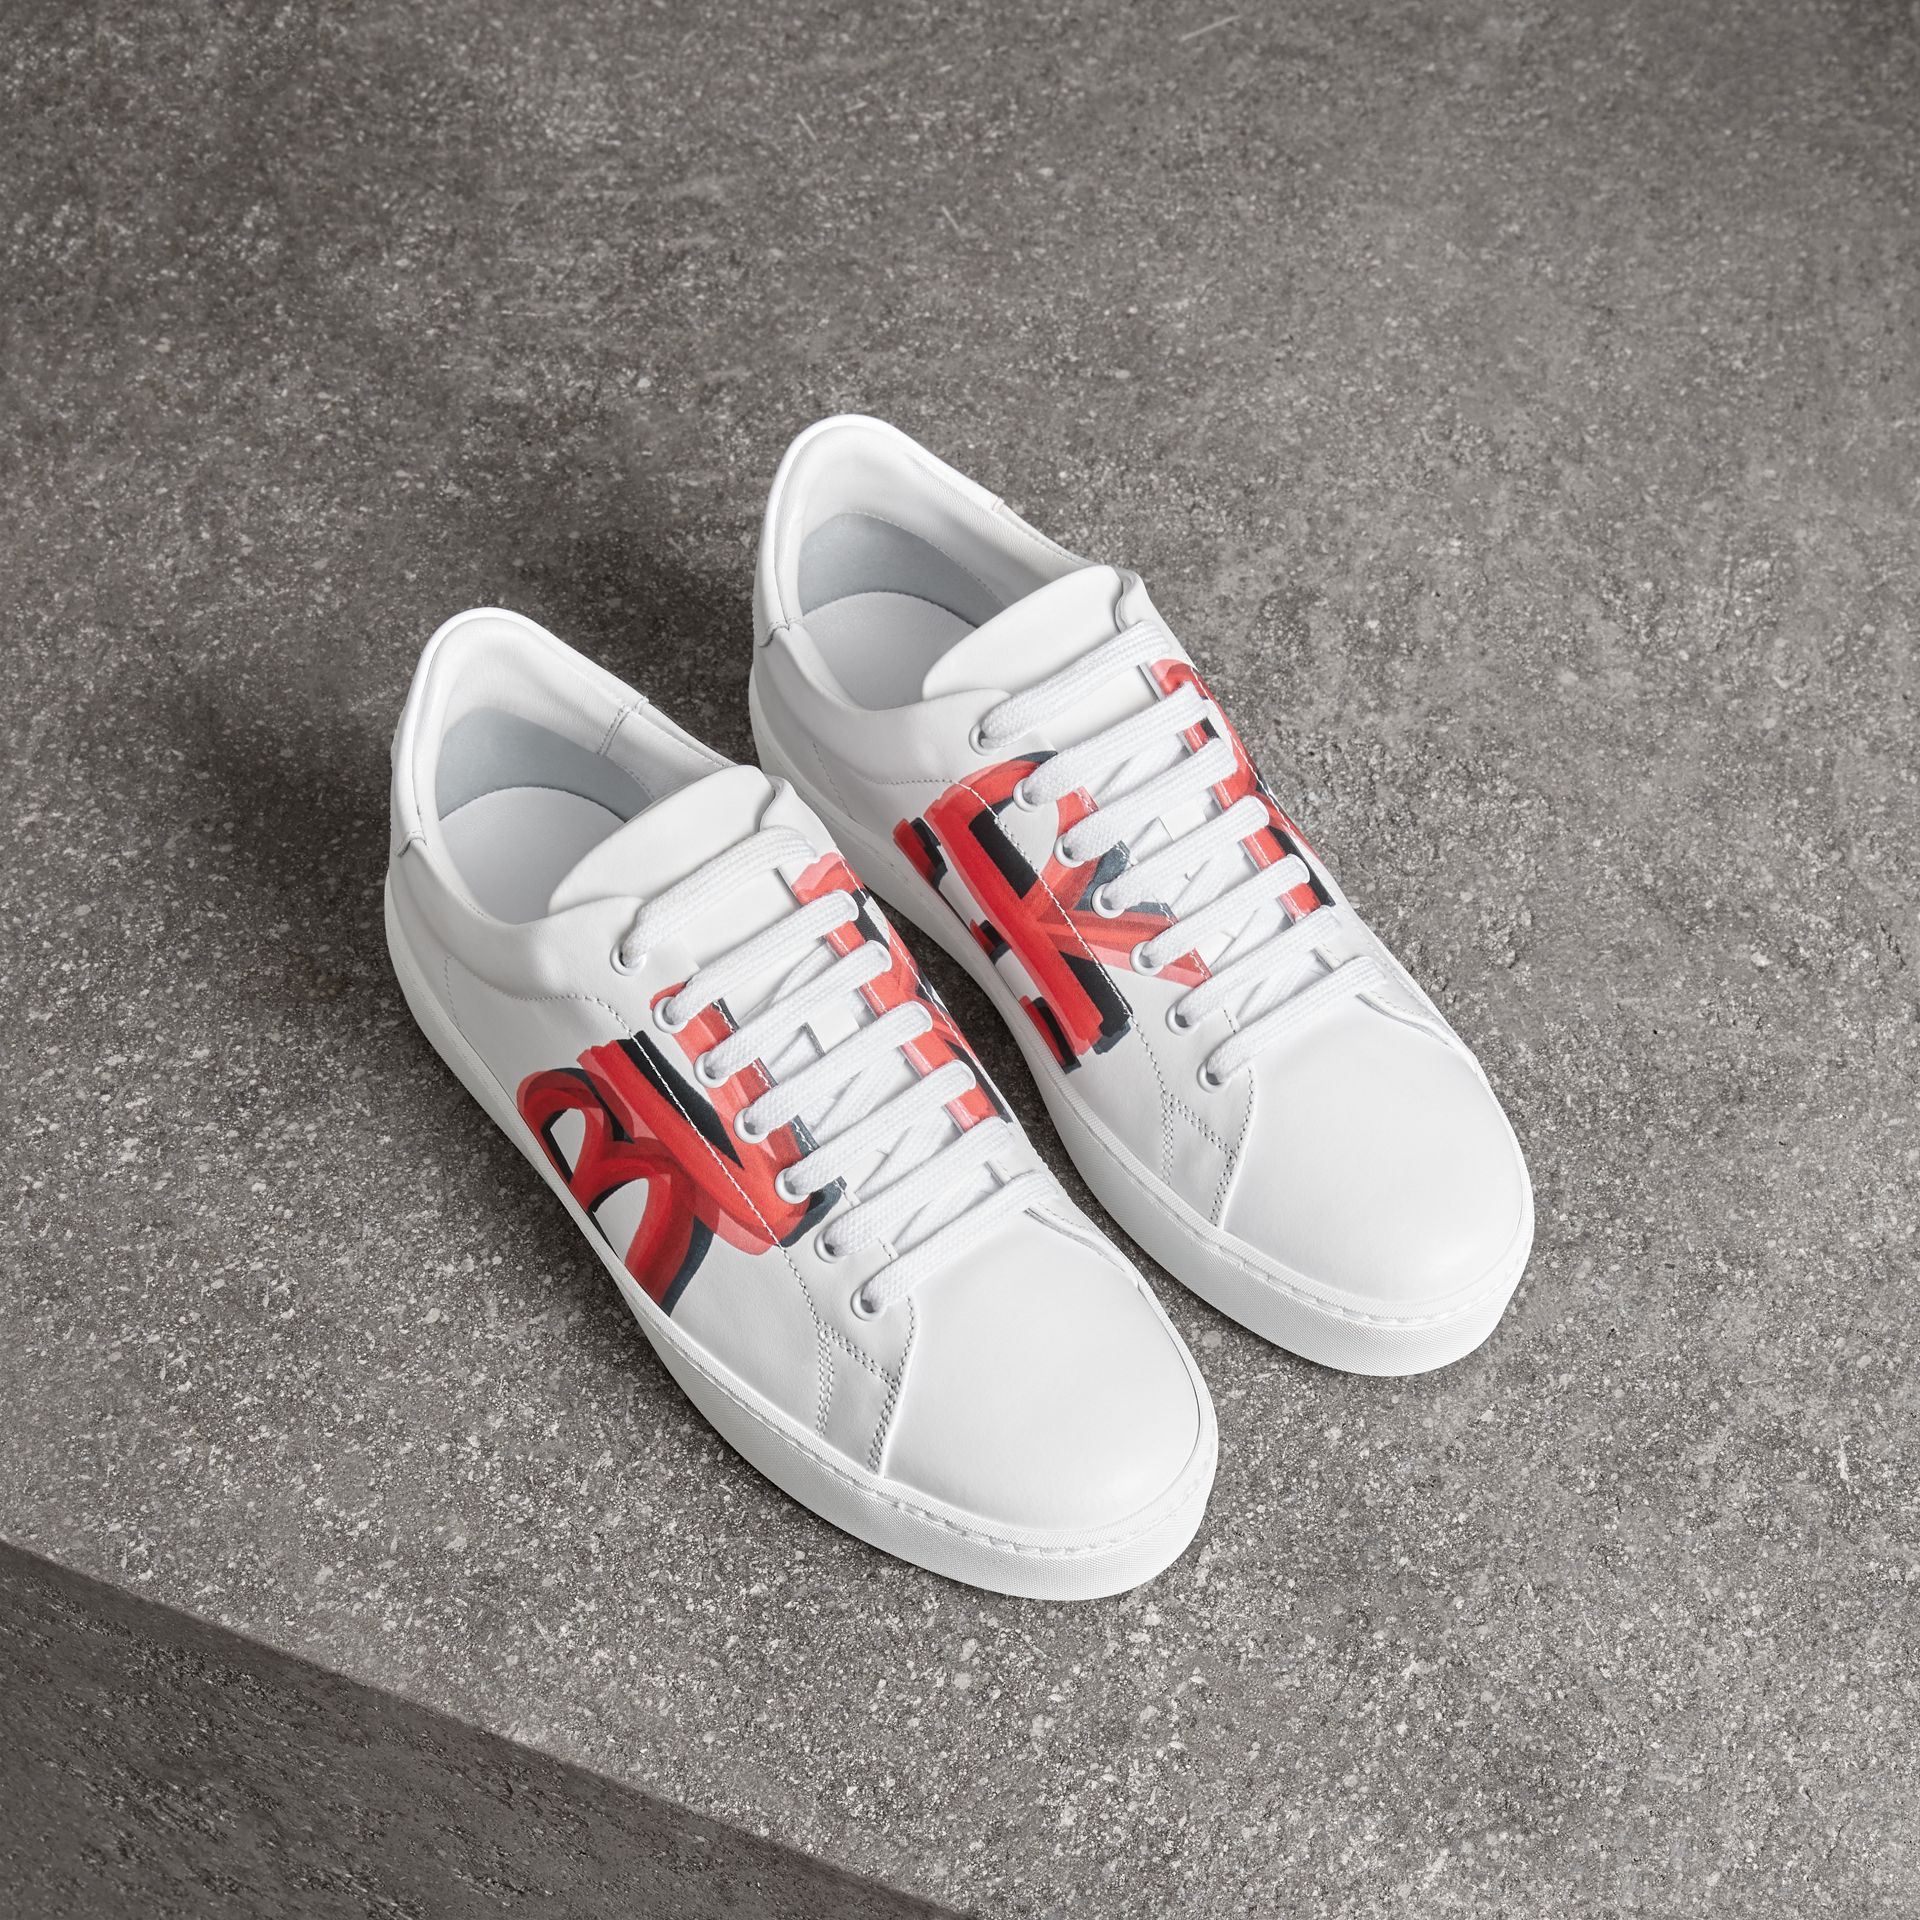 Graffiti Print Leather Sneakers in Bright Red - Women | Burberry United States - gallery image 0